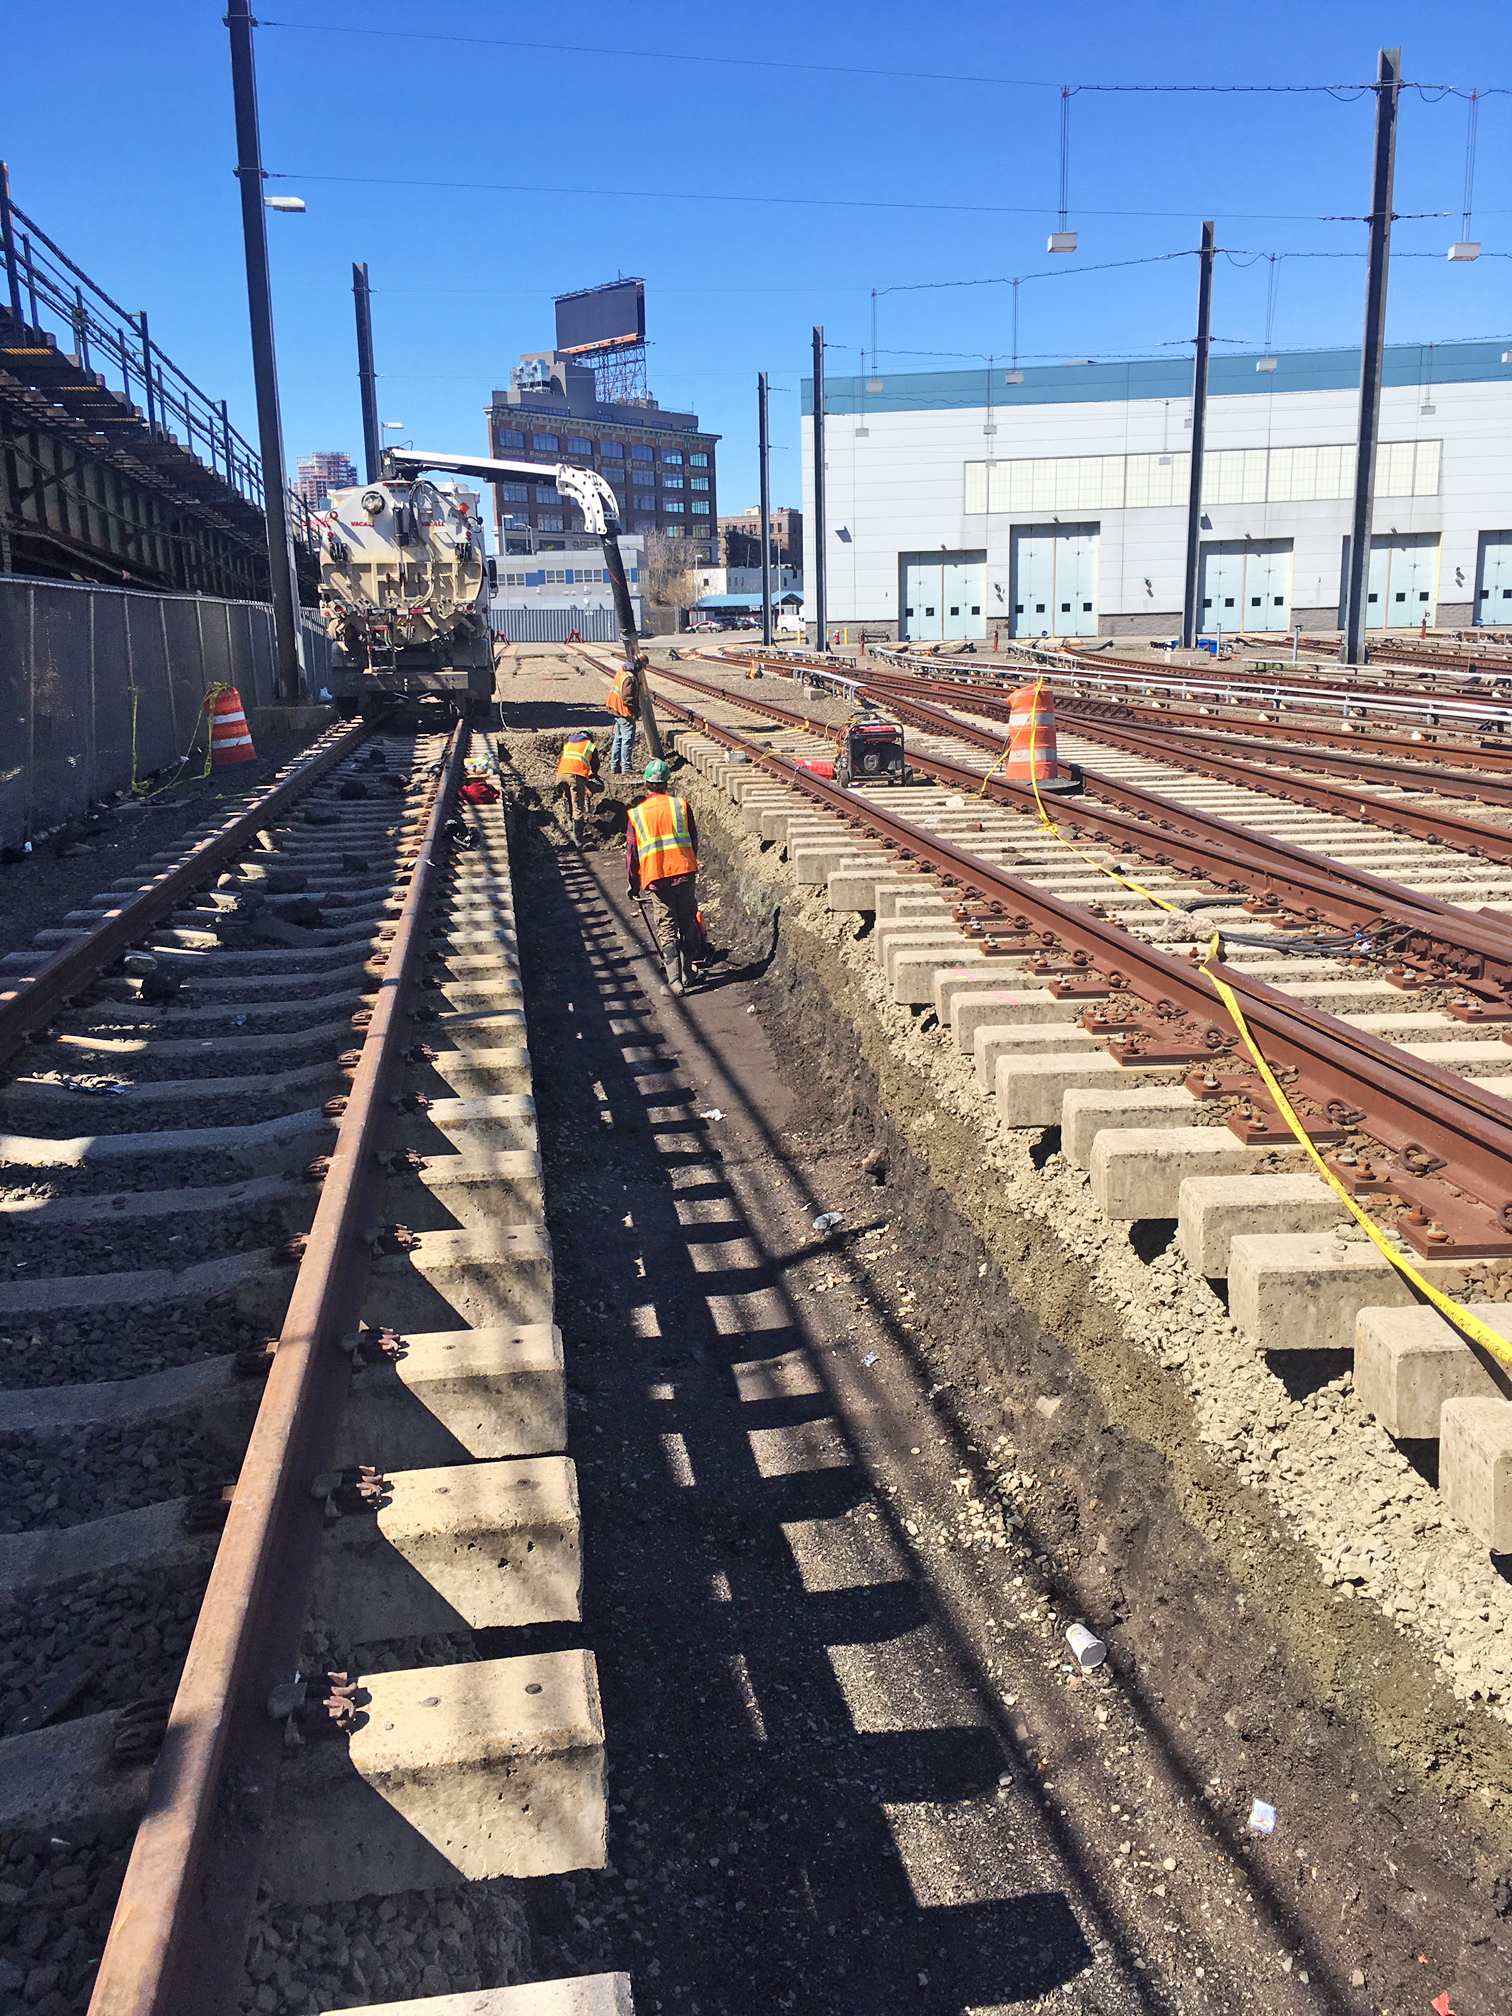 Vacuum track excavation of material between tracks in Mid Day Storage Yard for future conduit installation 04-19-19